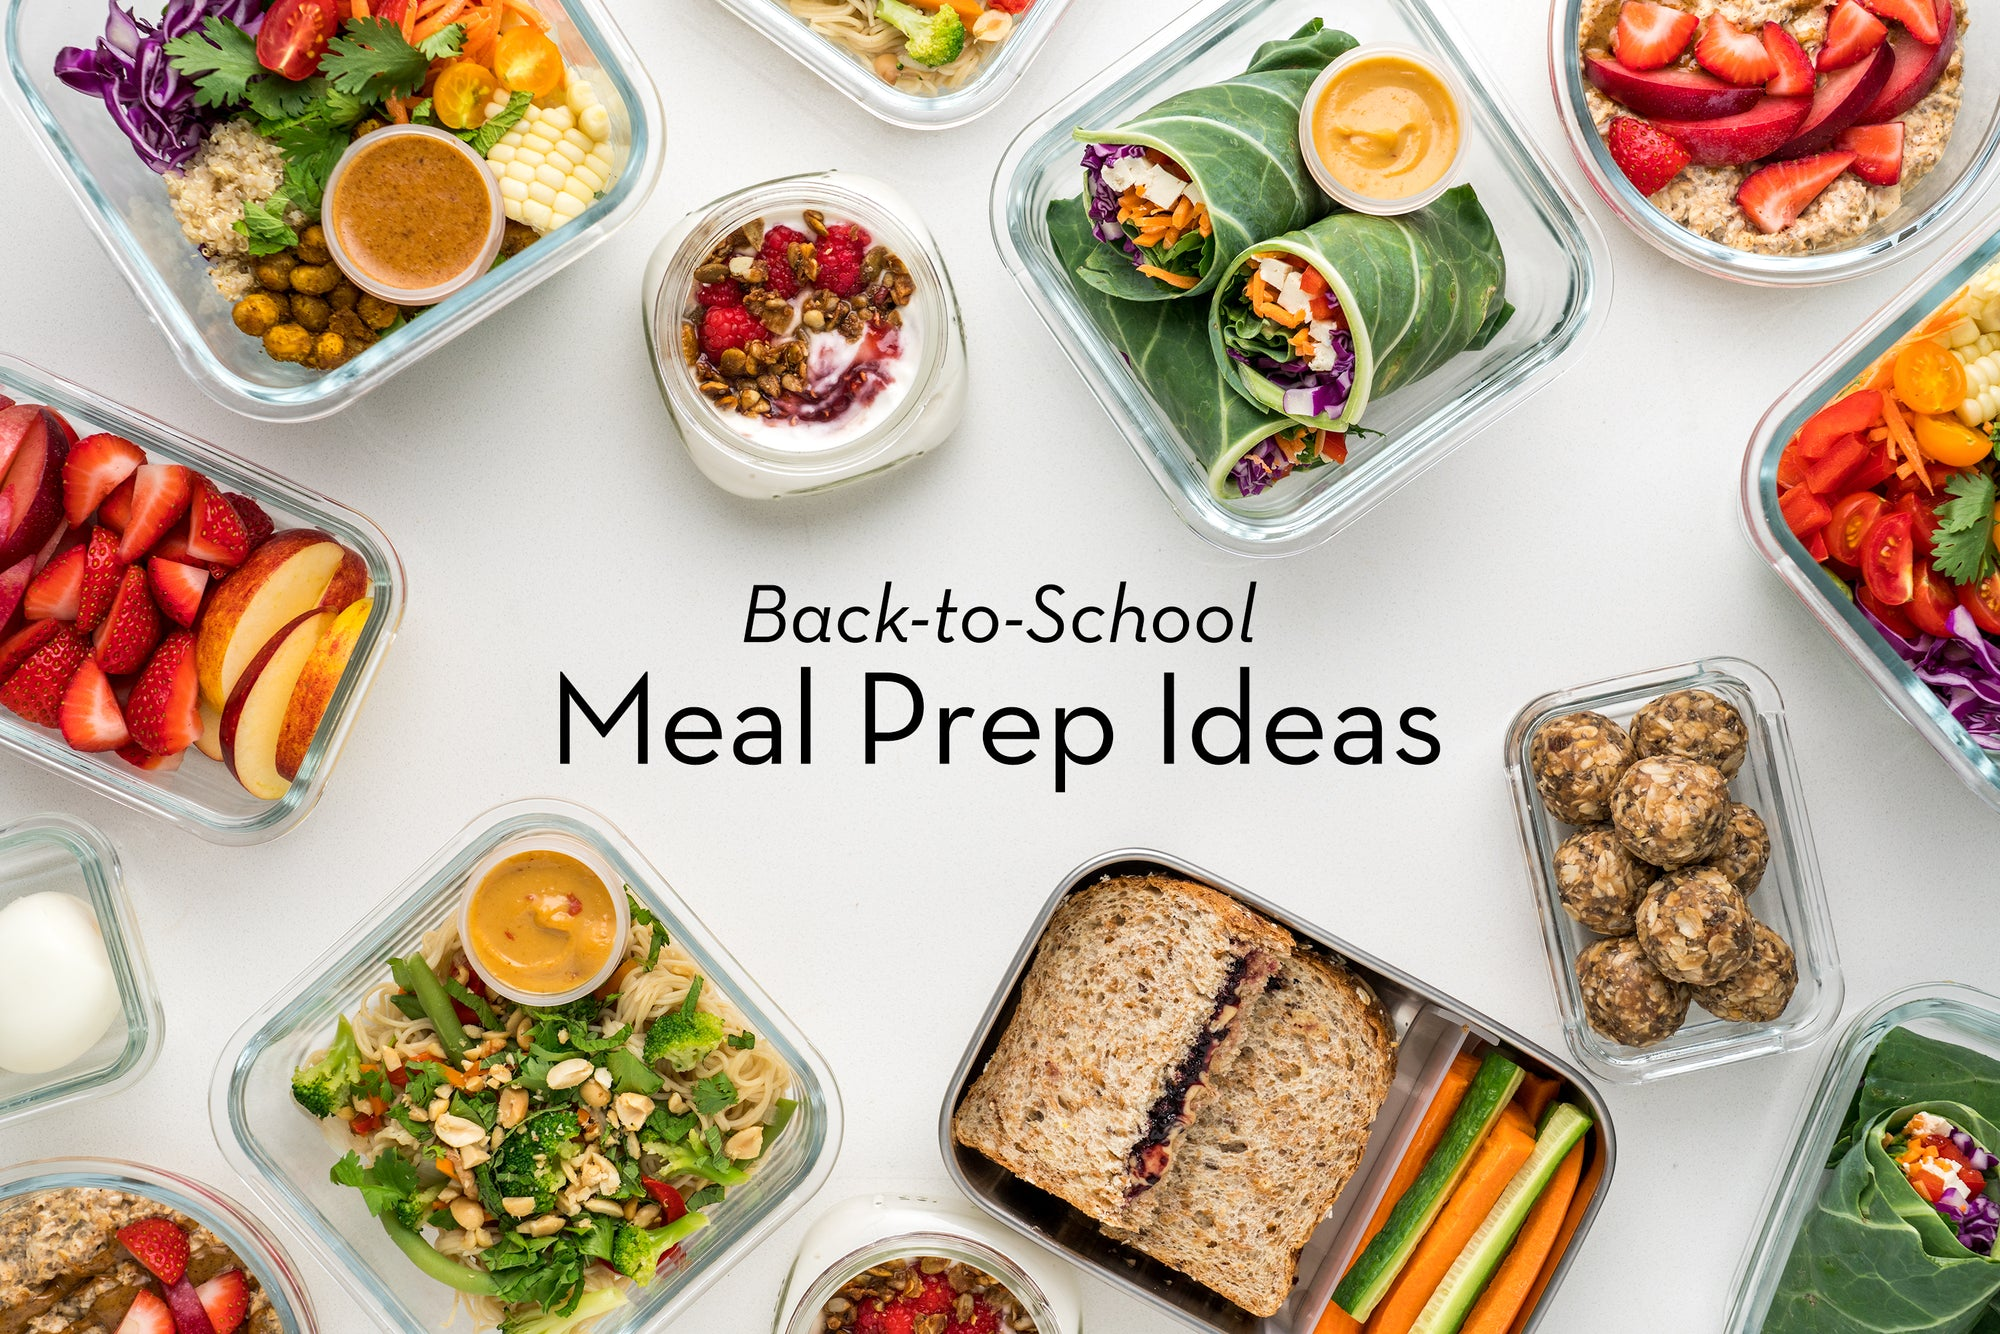 Healthy Back-To-School Meal Prep Ideas